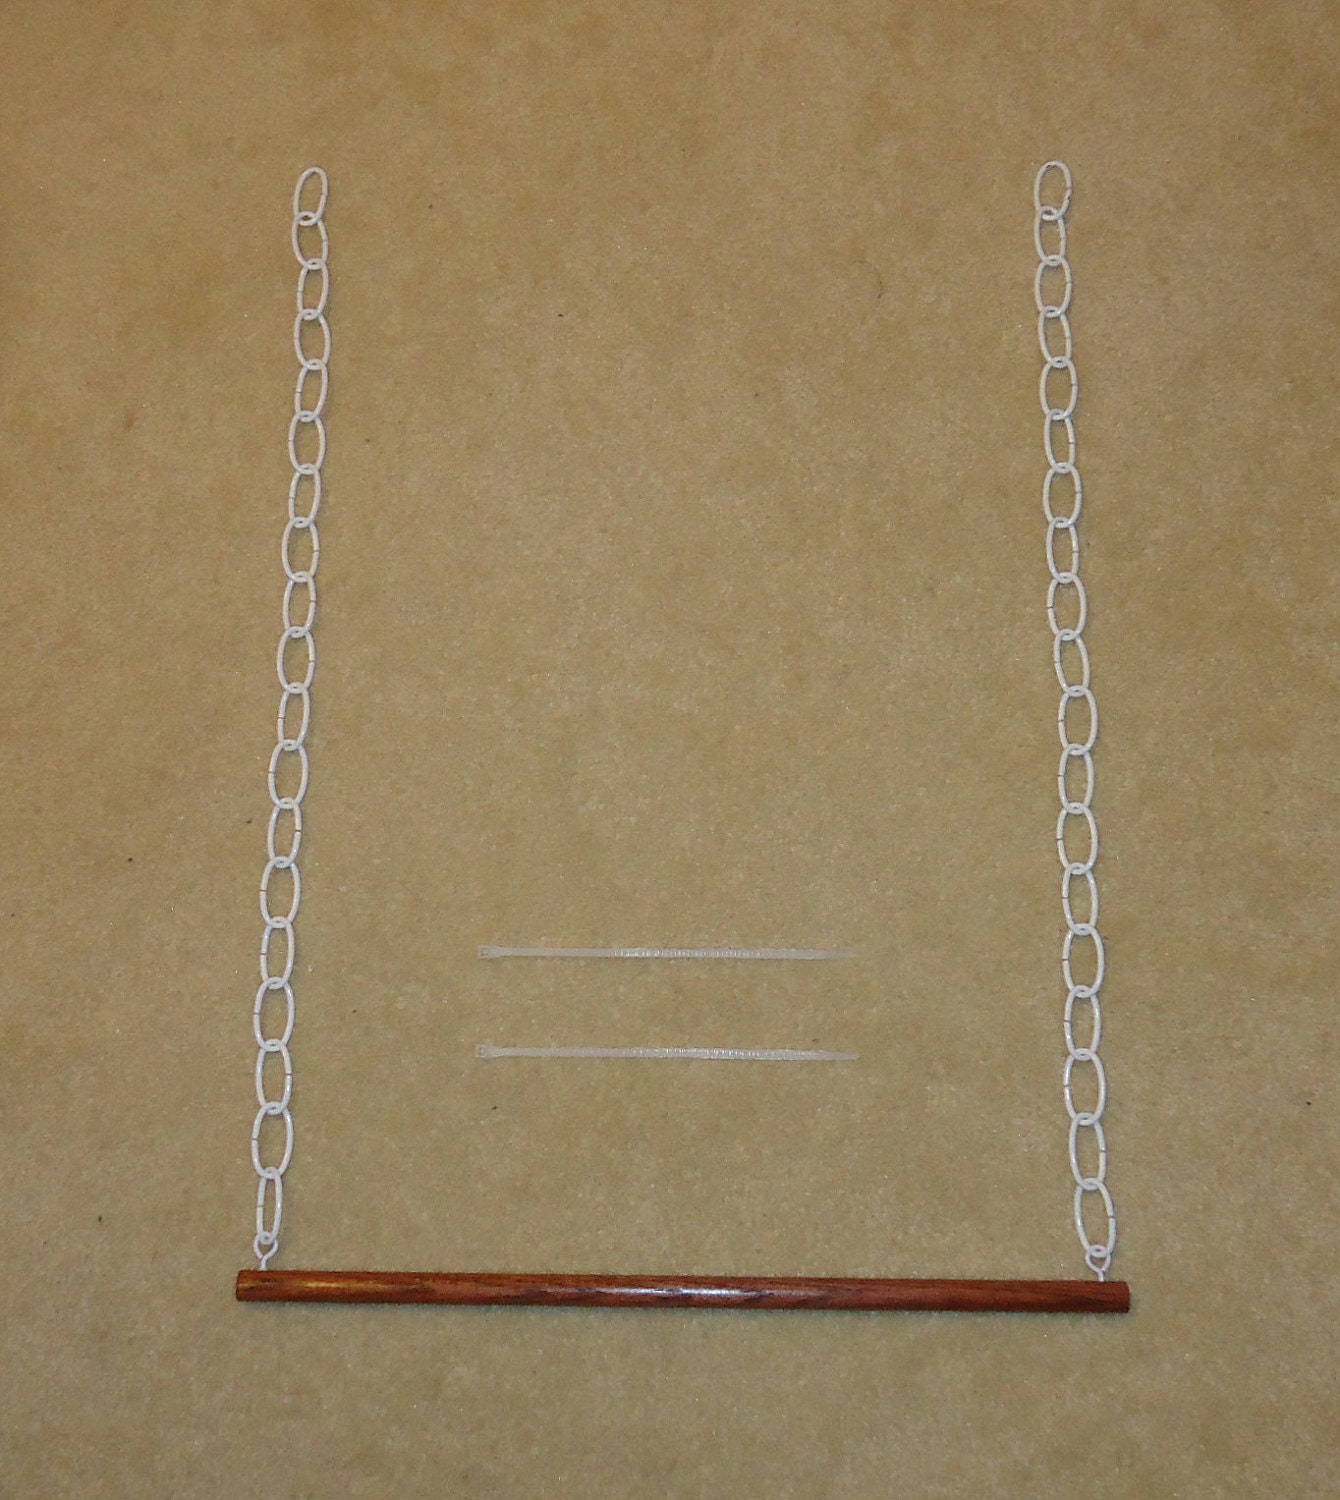 Doll Clothes Hanger Rod Extension